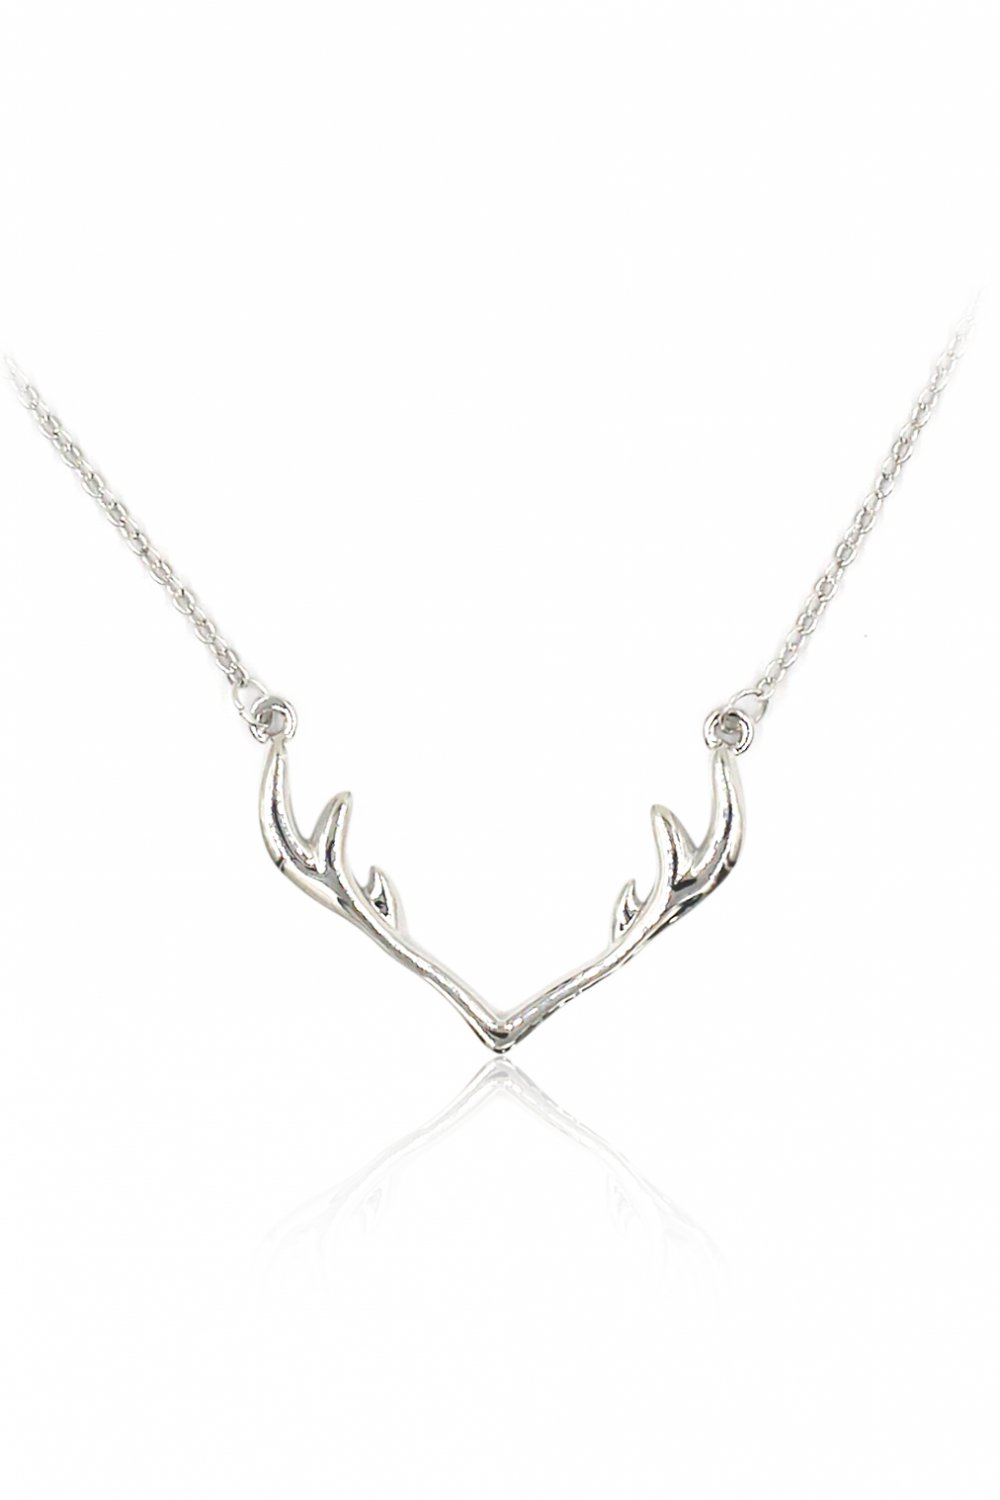 Fashion antlers clavicle silver necklace